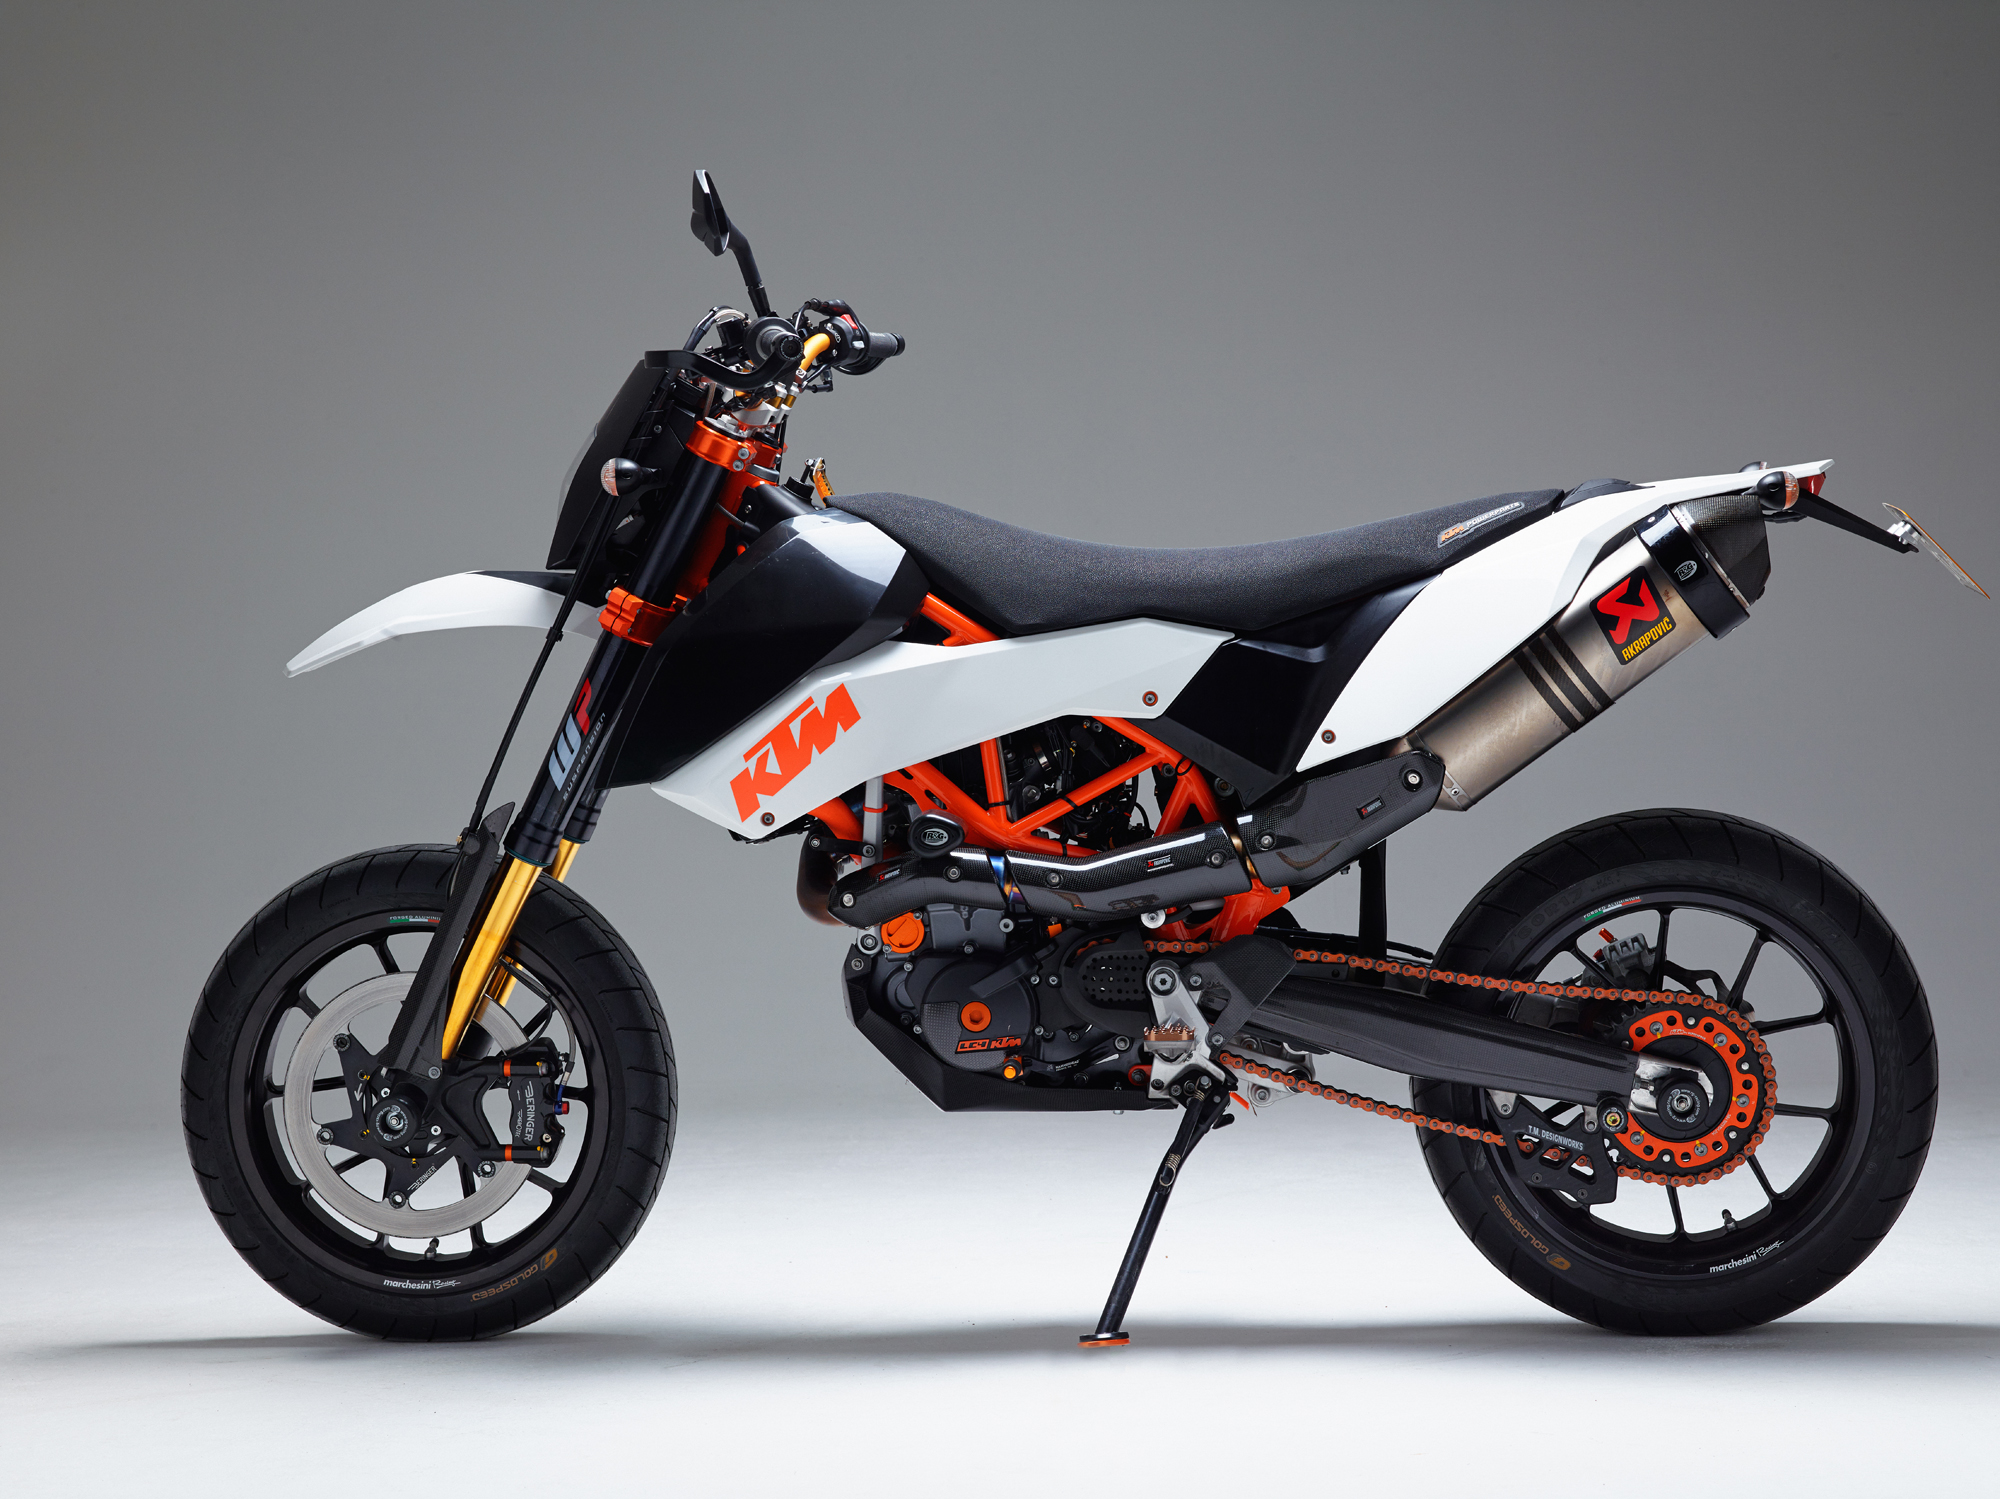 ktm 690 smc r handguards images